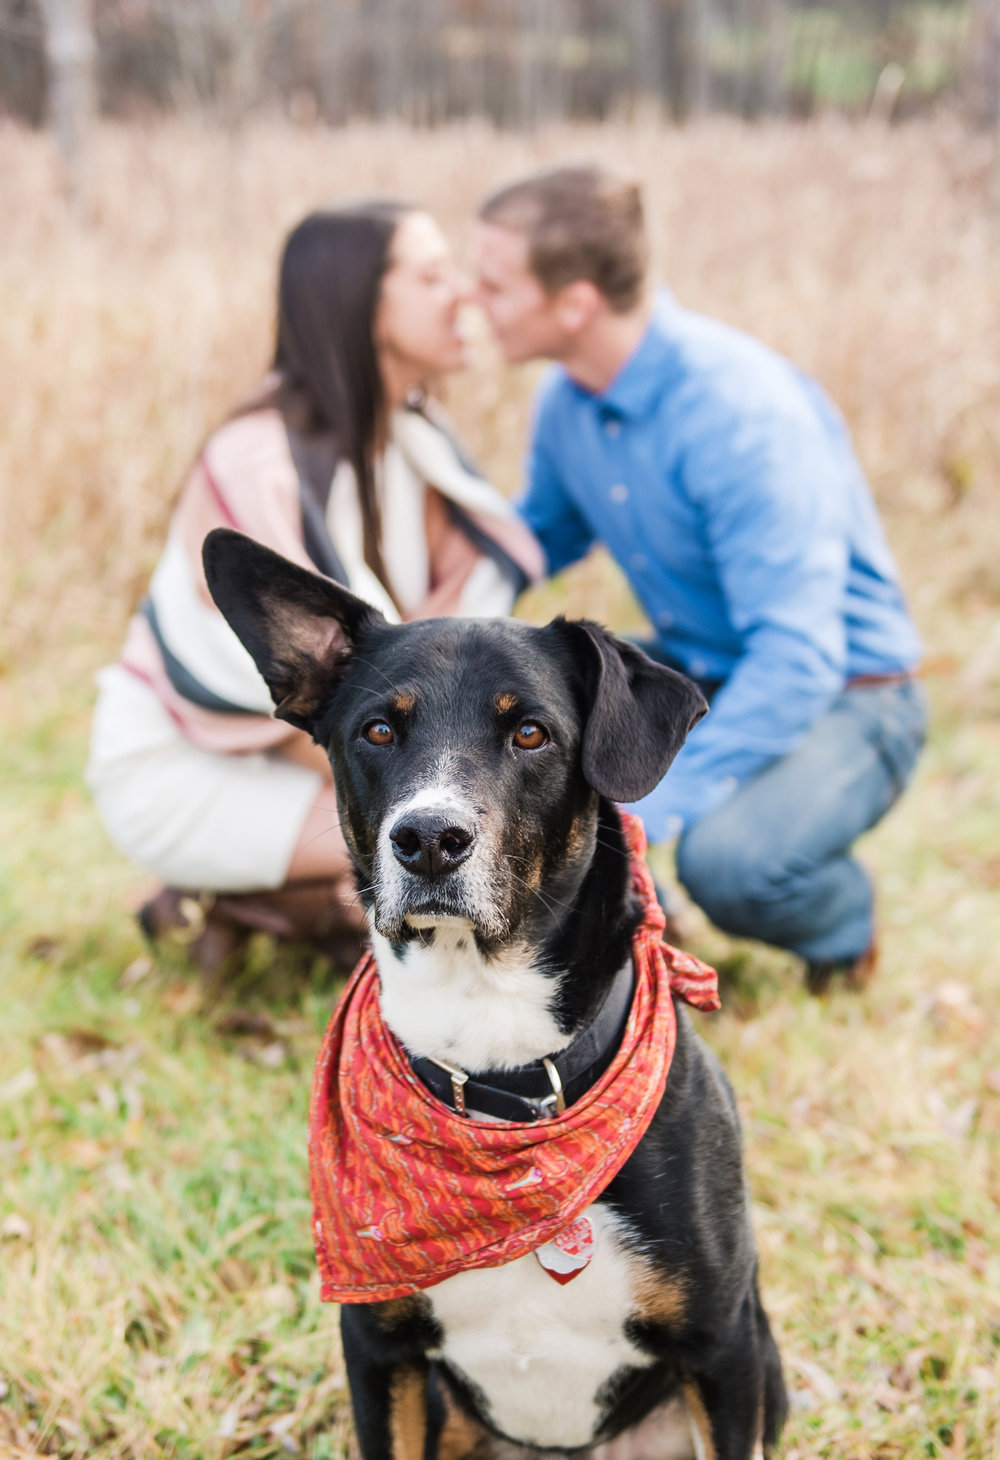 Mendon_Ponds_Park_Rochester_Engagement_Session_JILL_STUDIO_Rochester_NY_Photographer_DSC_0228.jpg